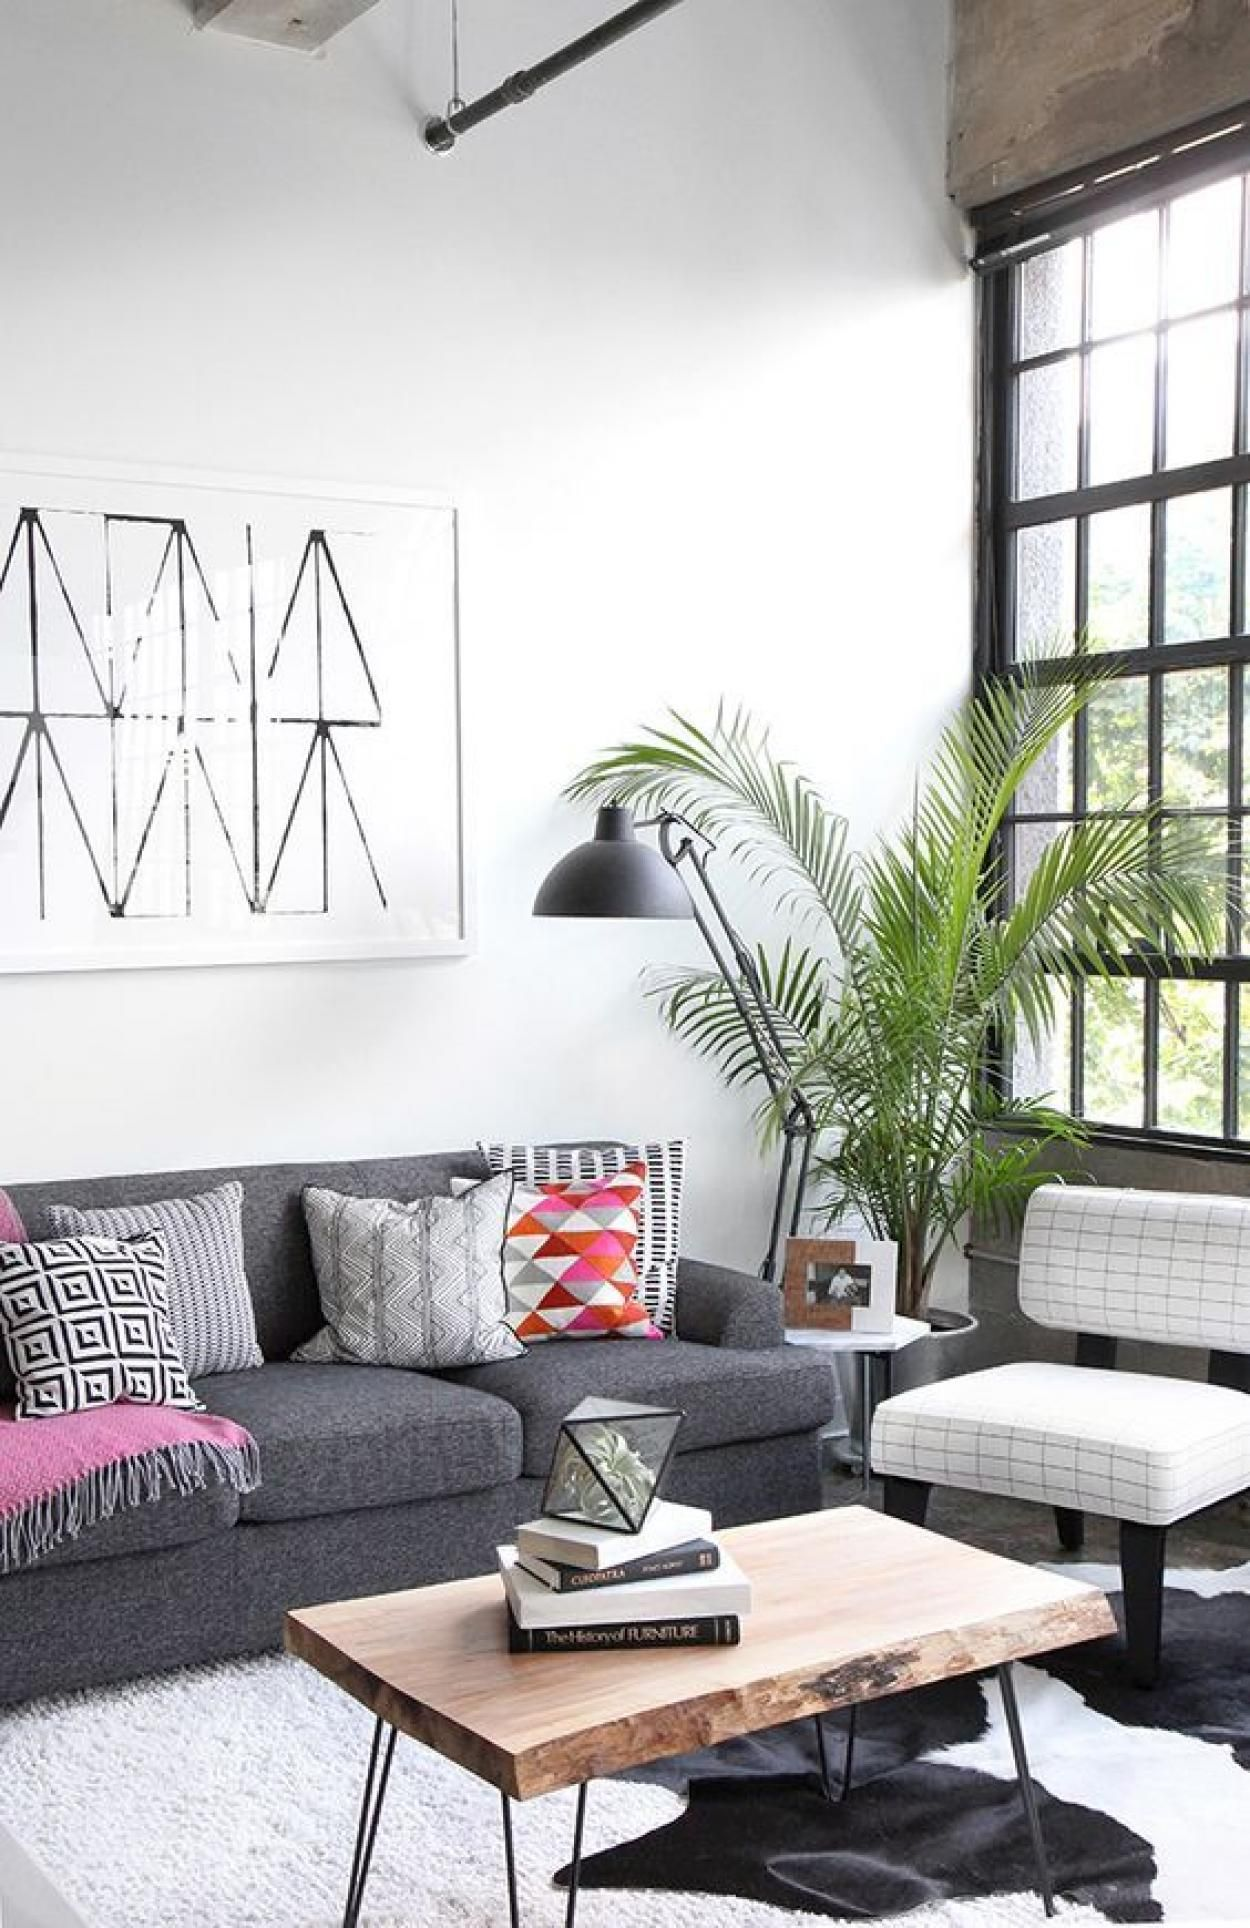 Unusual Apartment Decor Coming From The Awesome Industrial Style Industrial Decor Living Room Industrial Apartment Decor Apartment Decor